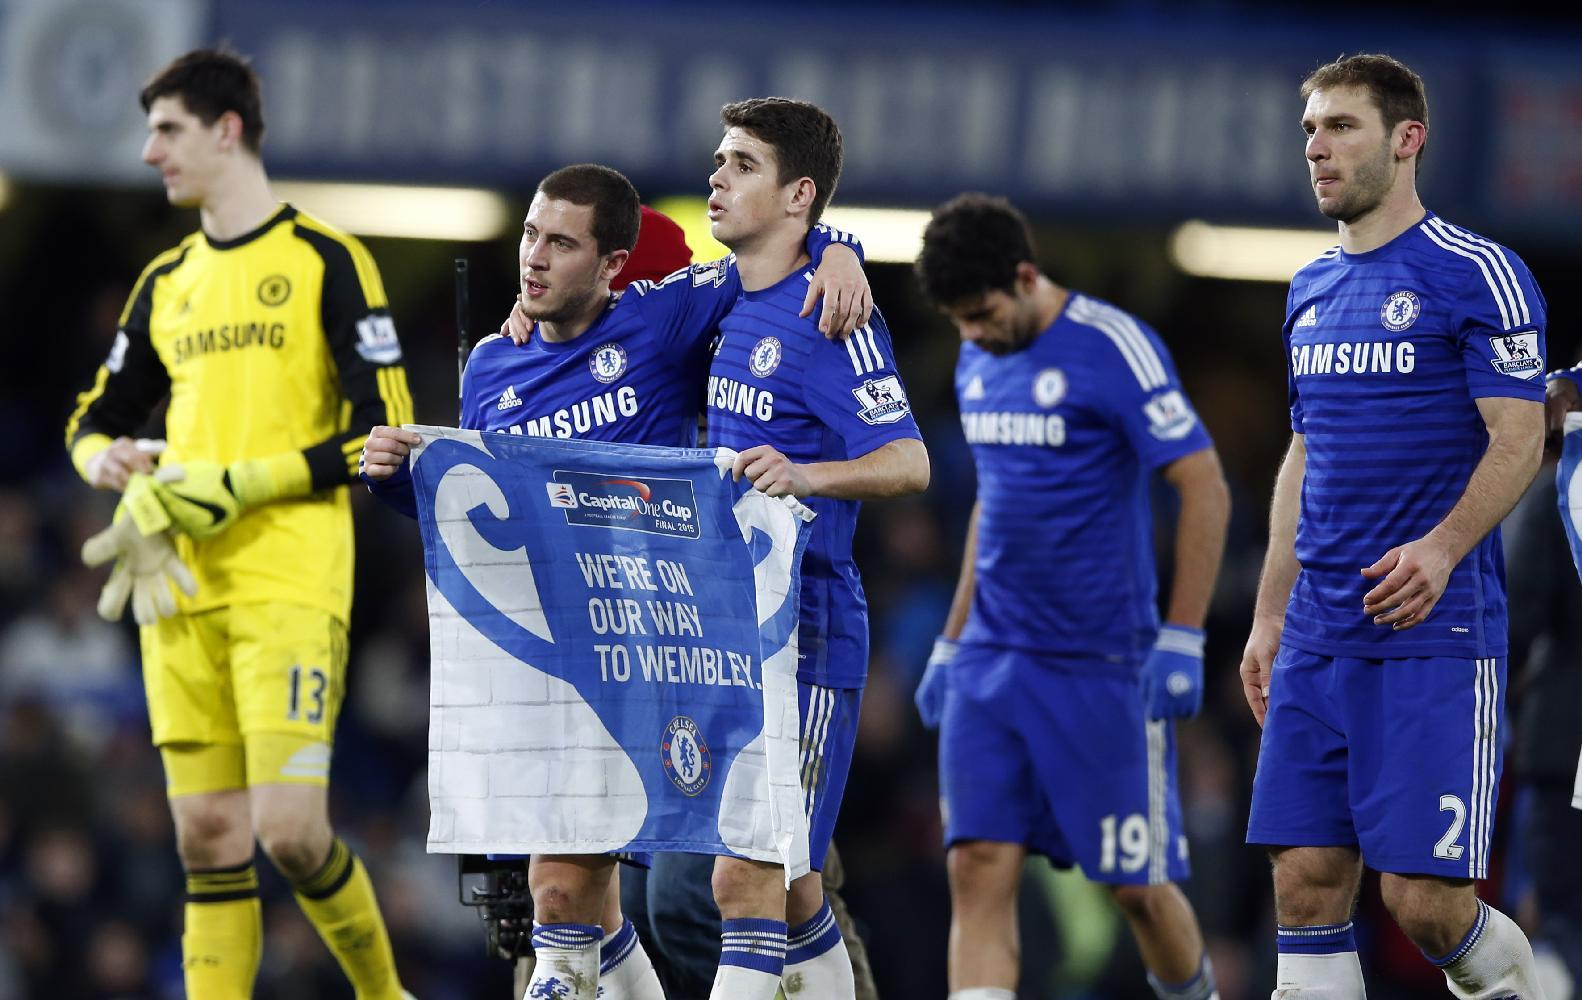 Chelsea looks to restore 8-point lead over stumbling City